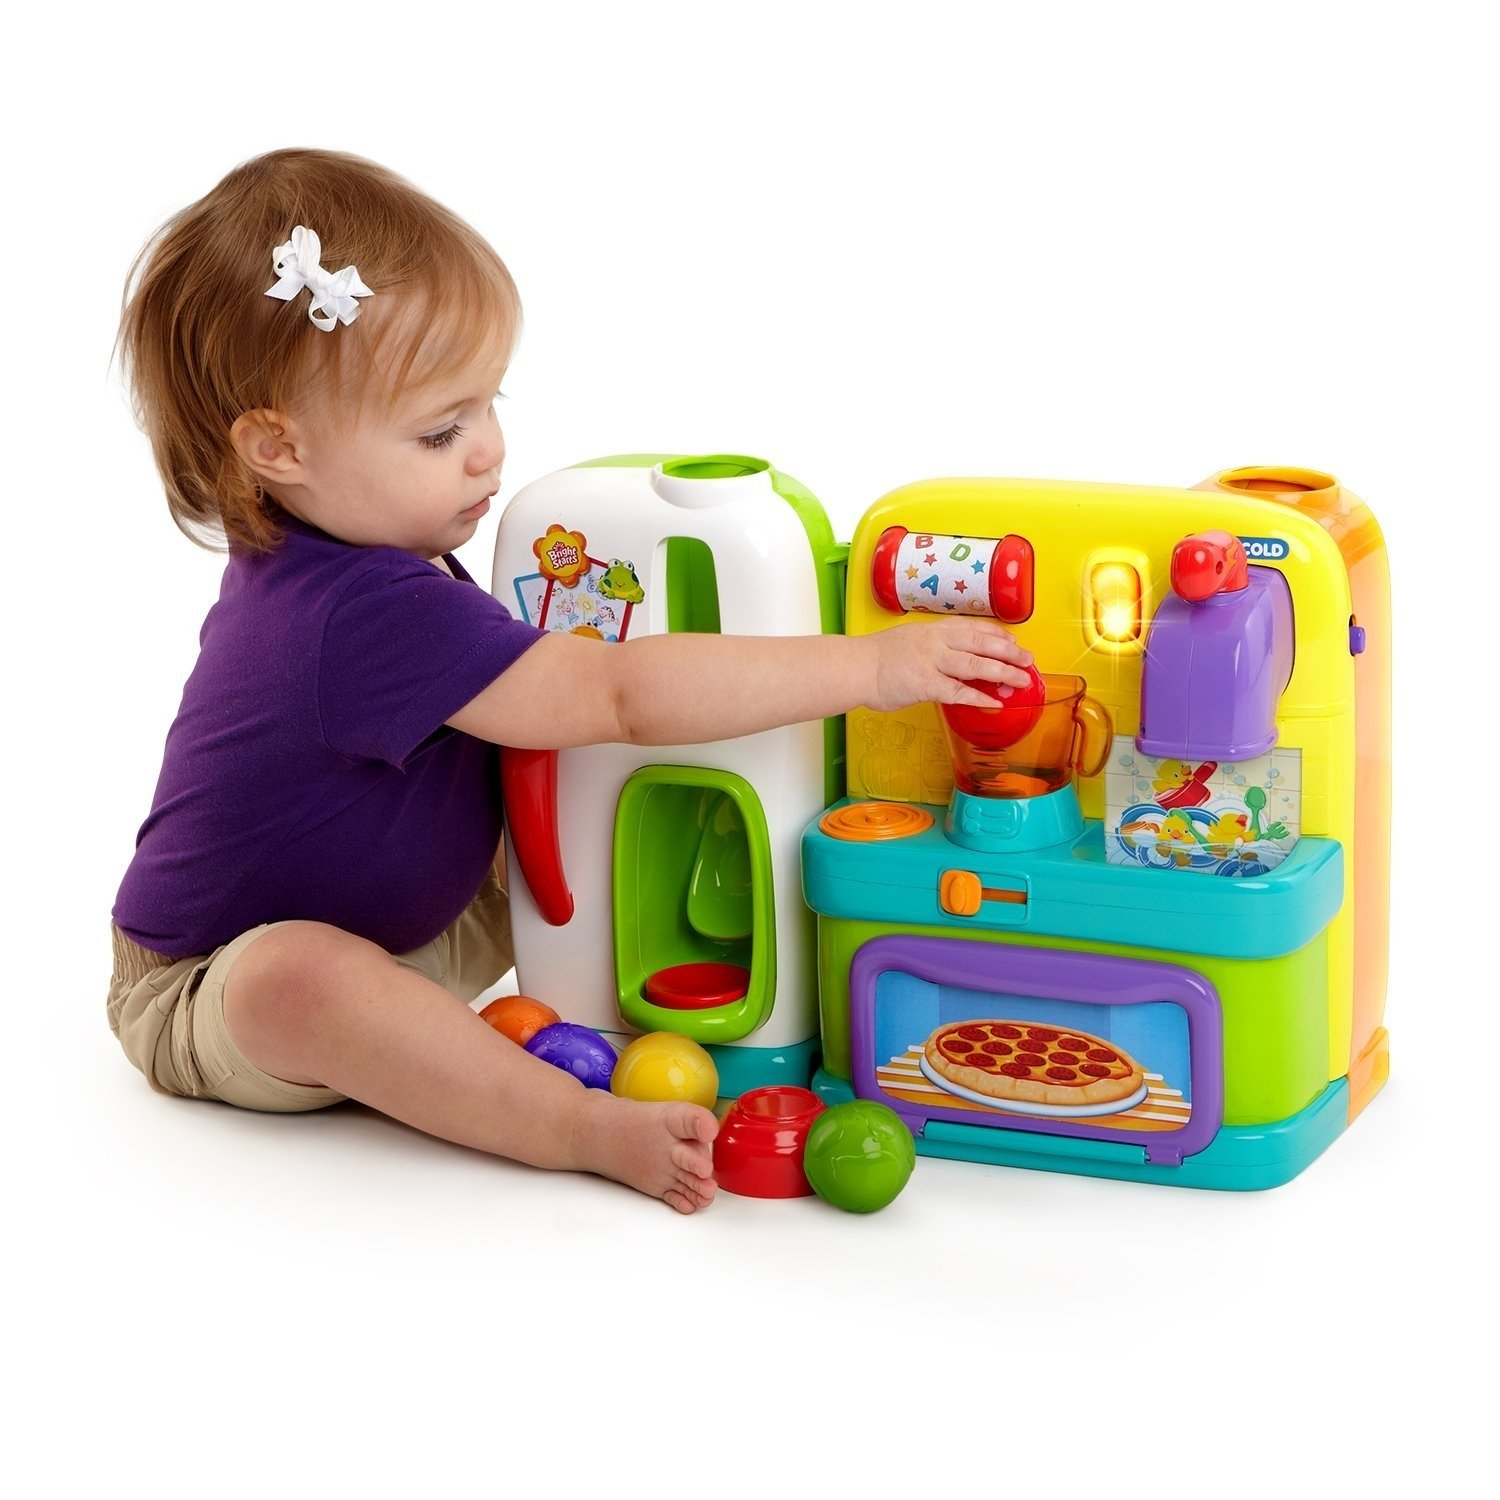 what are the best toys for 1 year old girls? 25+ birthday present